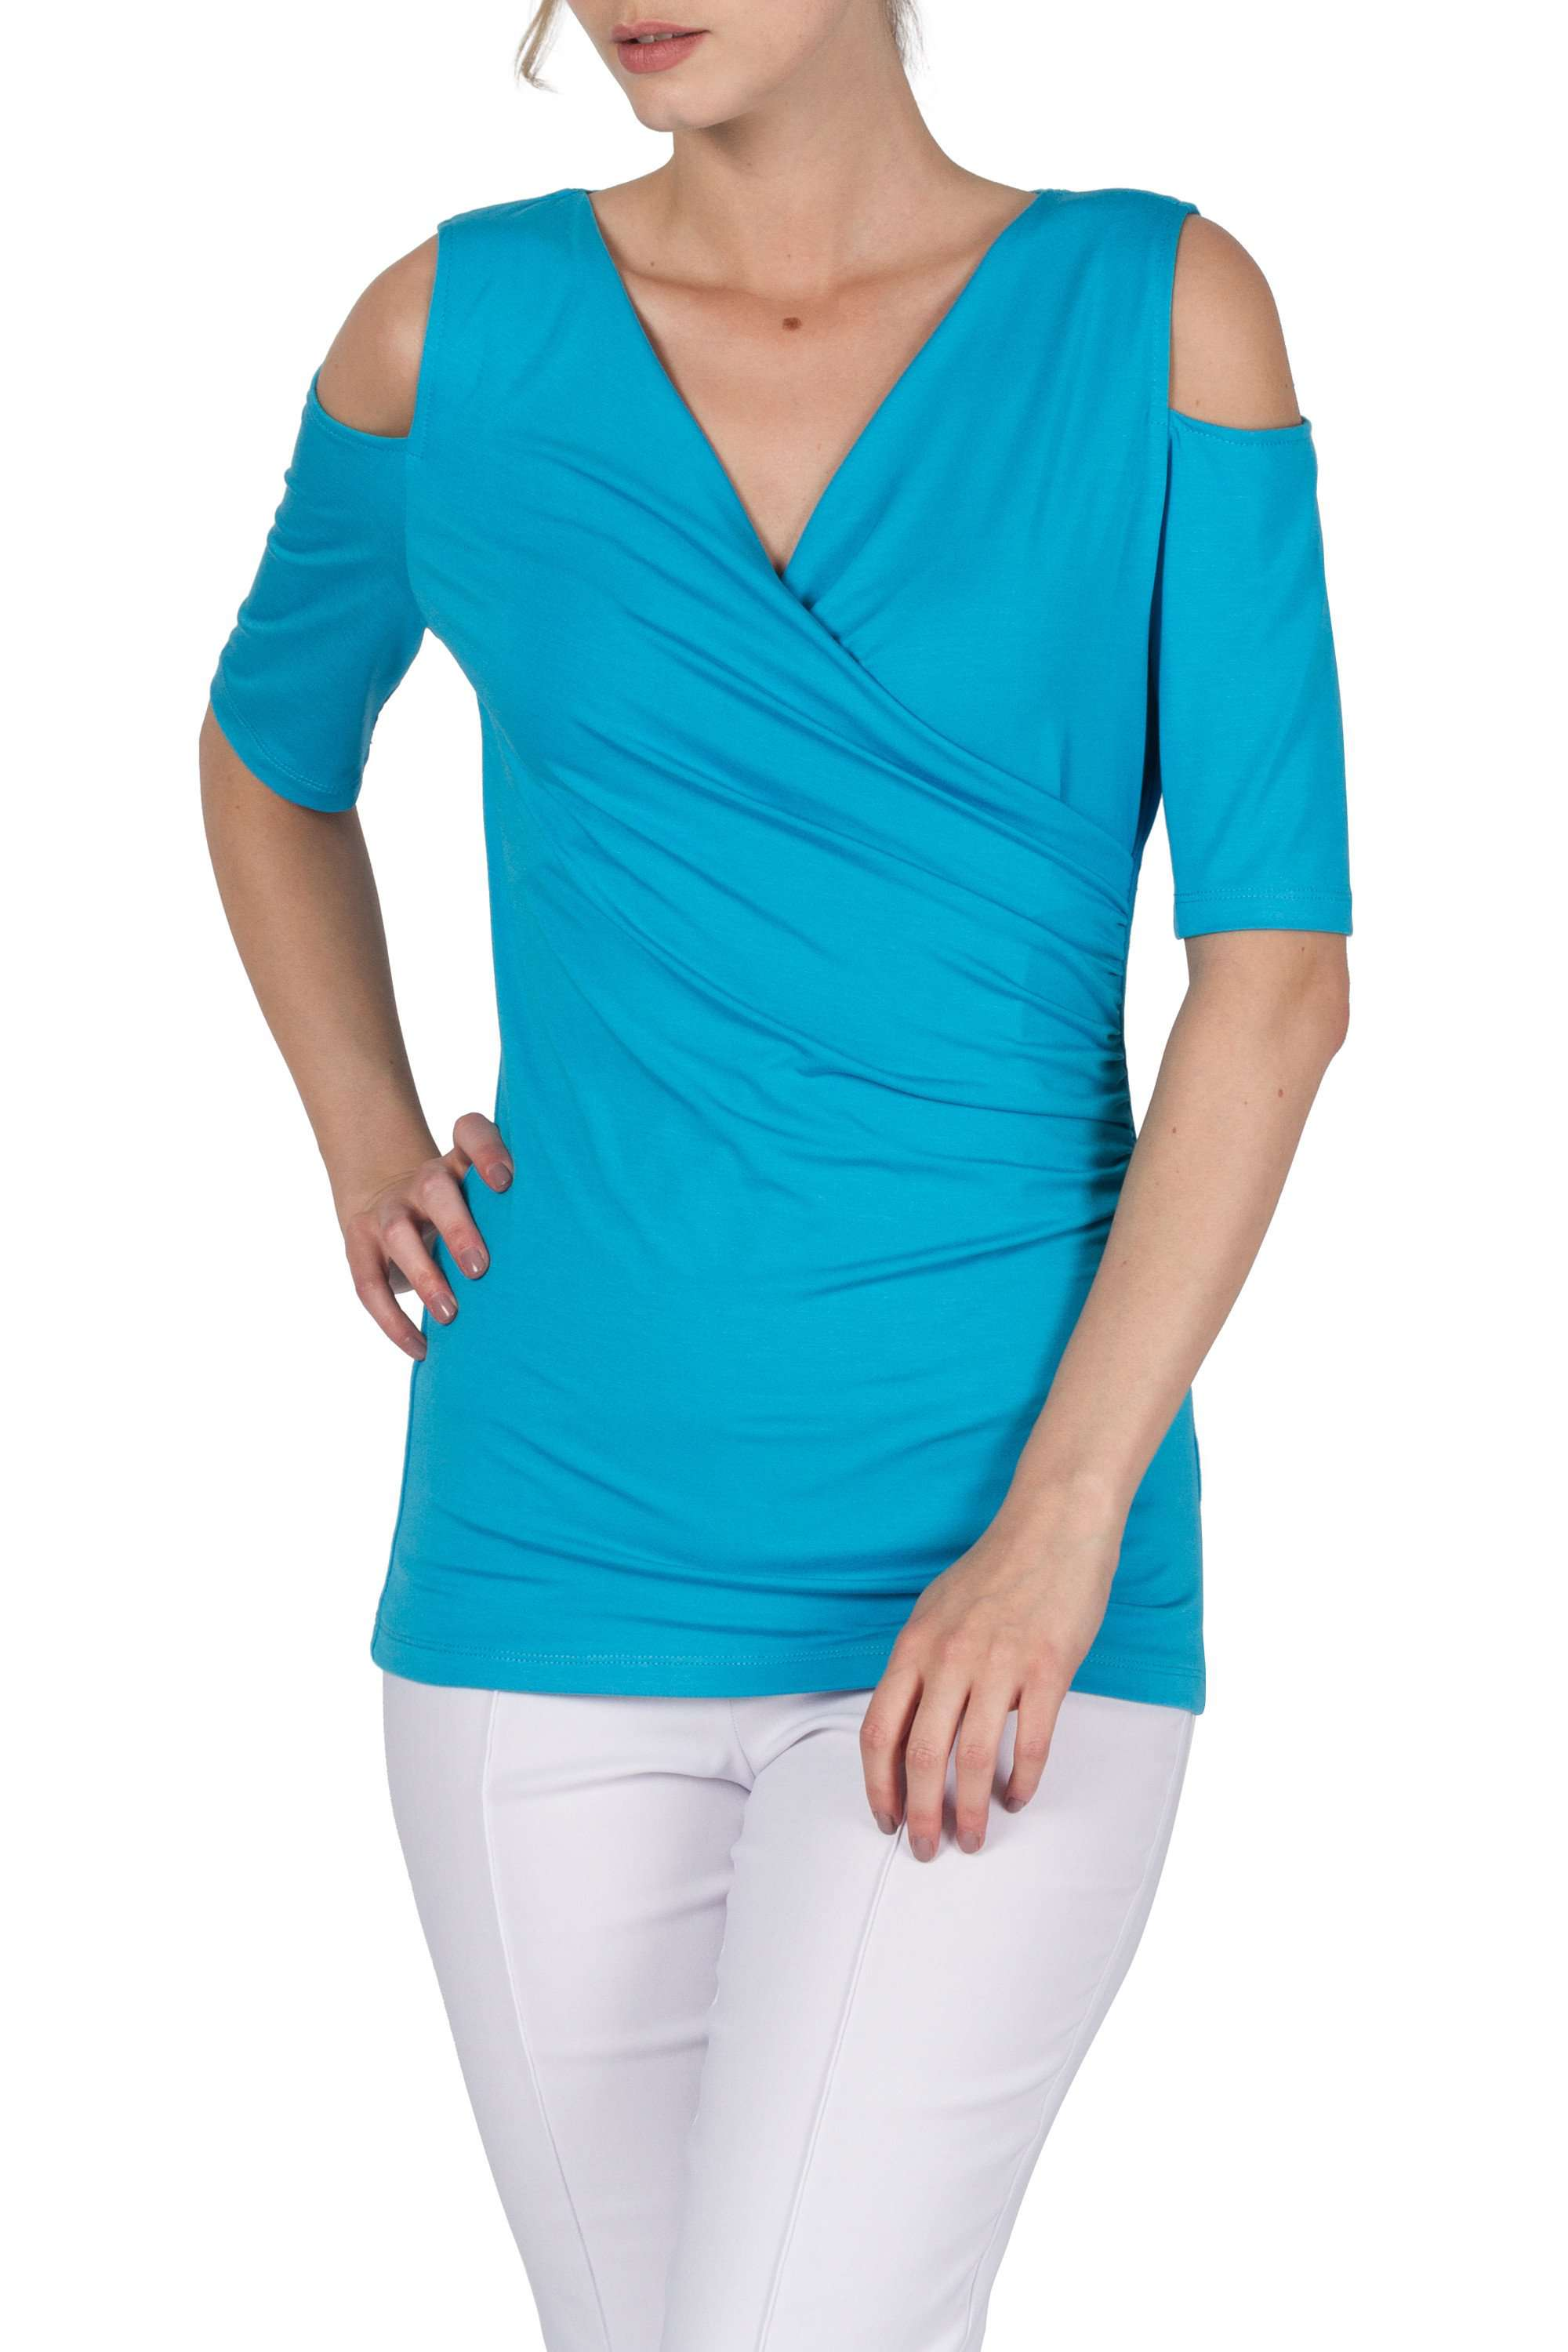 Turquoise Open Shoulder Top - Yvonne Marie